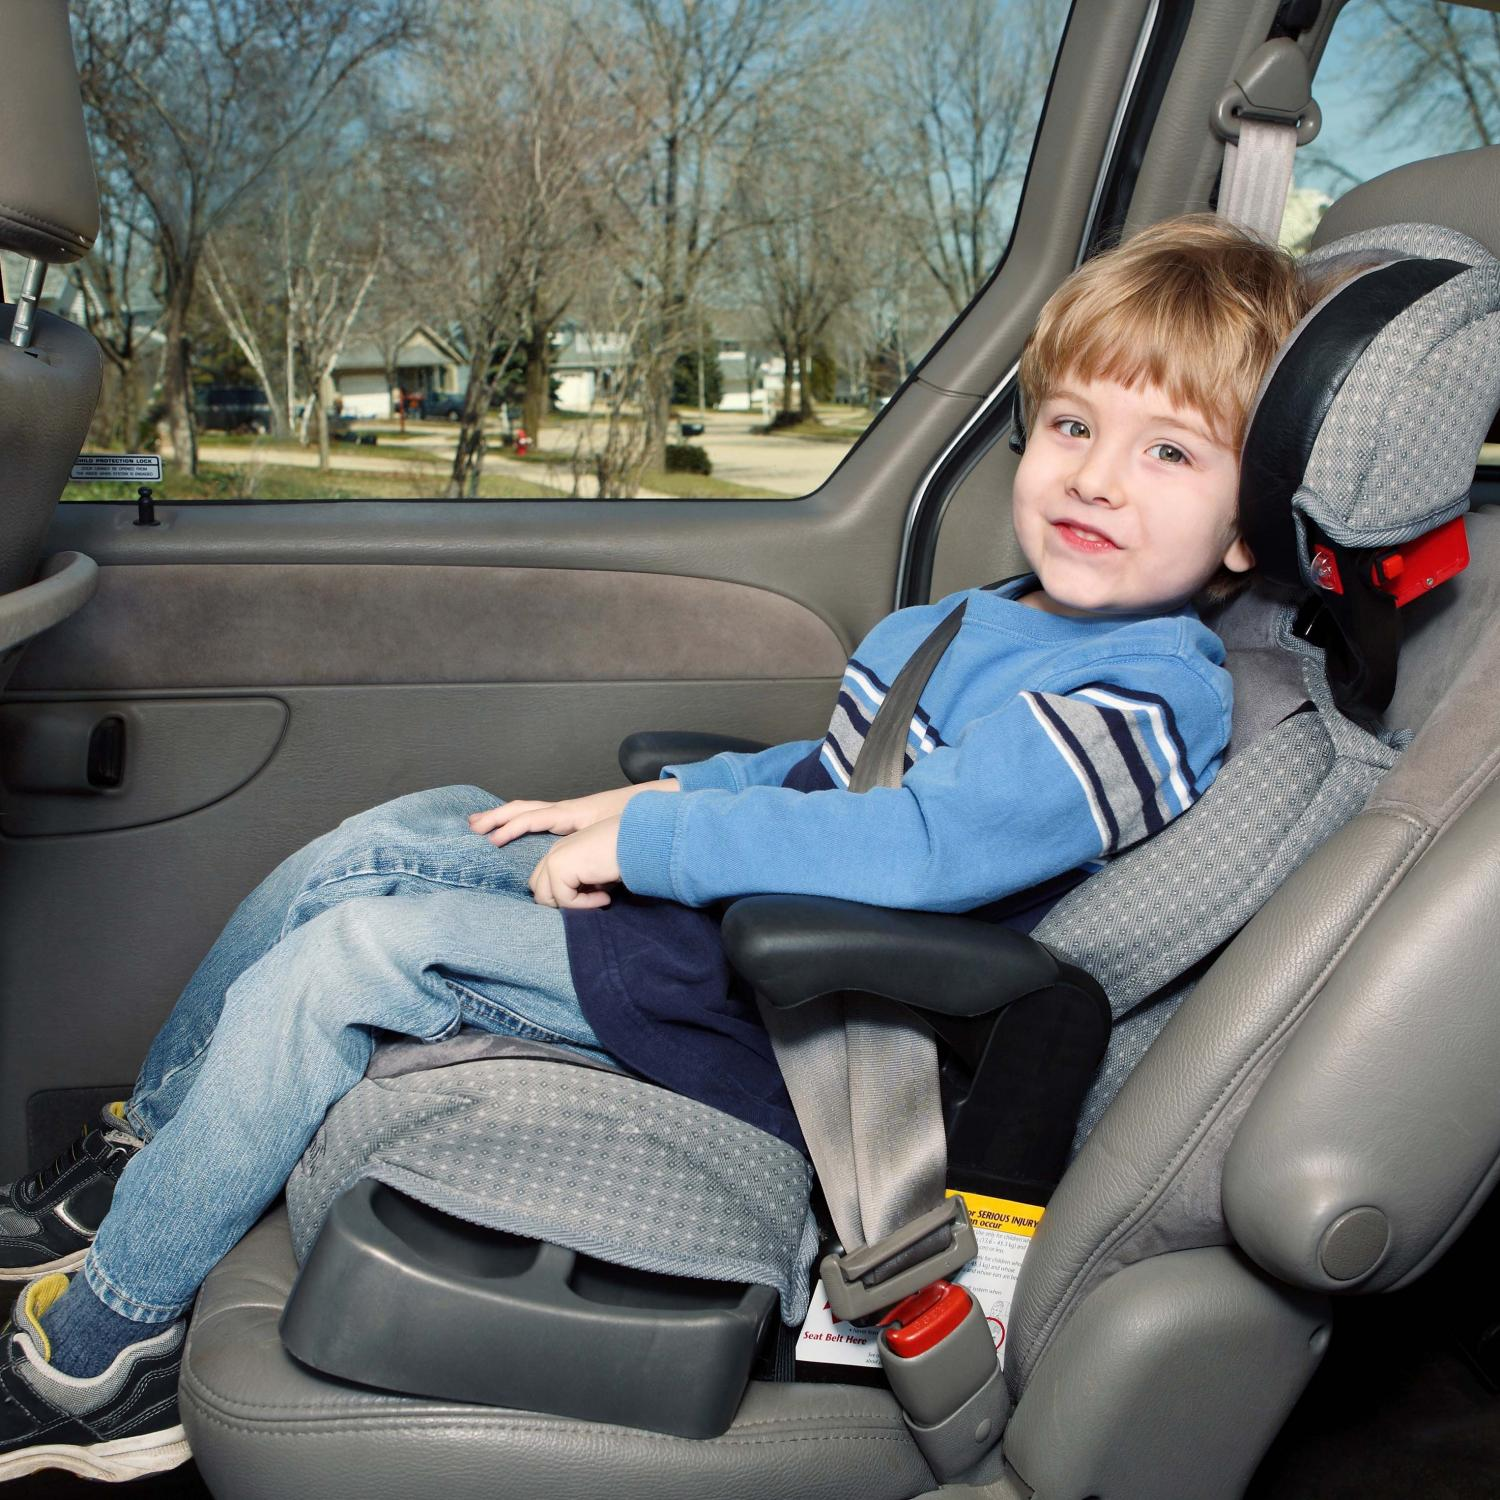 A Booster Seat: Know if Your Child Is Ready | Parenting